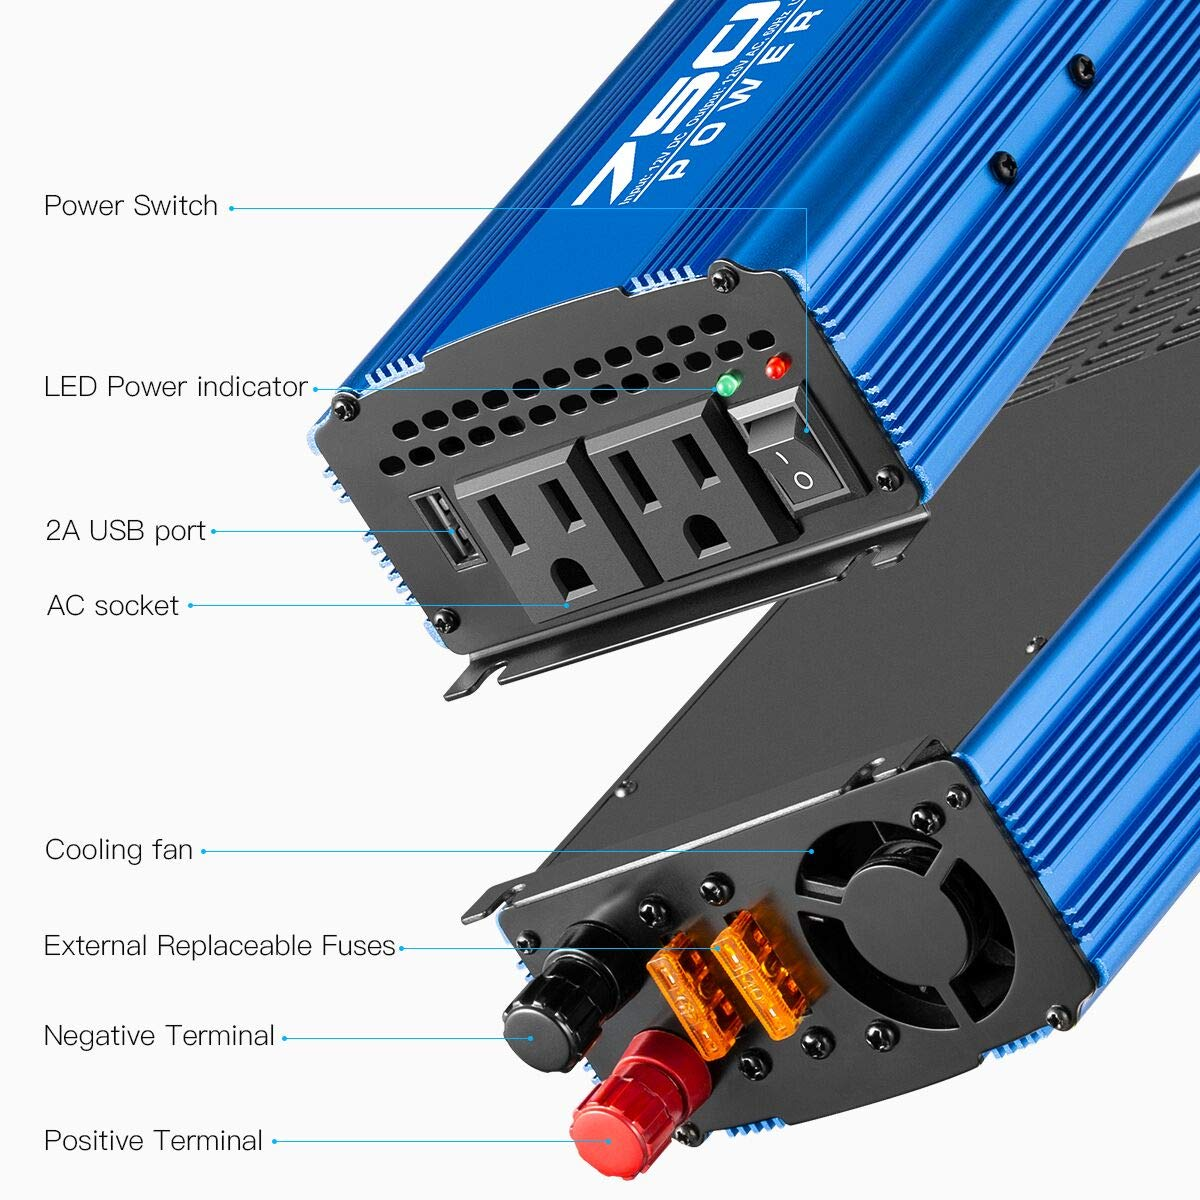 Kinverch 500W Continuous//1000W Peak Car Power Inverter DC 12V to AC 110V Adapter with 2 AC Outlets and 2A USB Charging Port